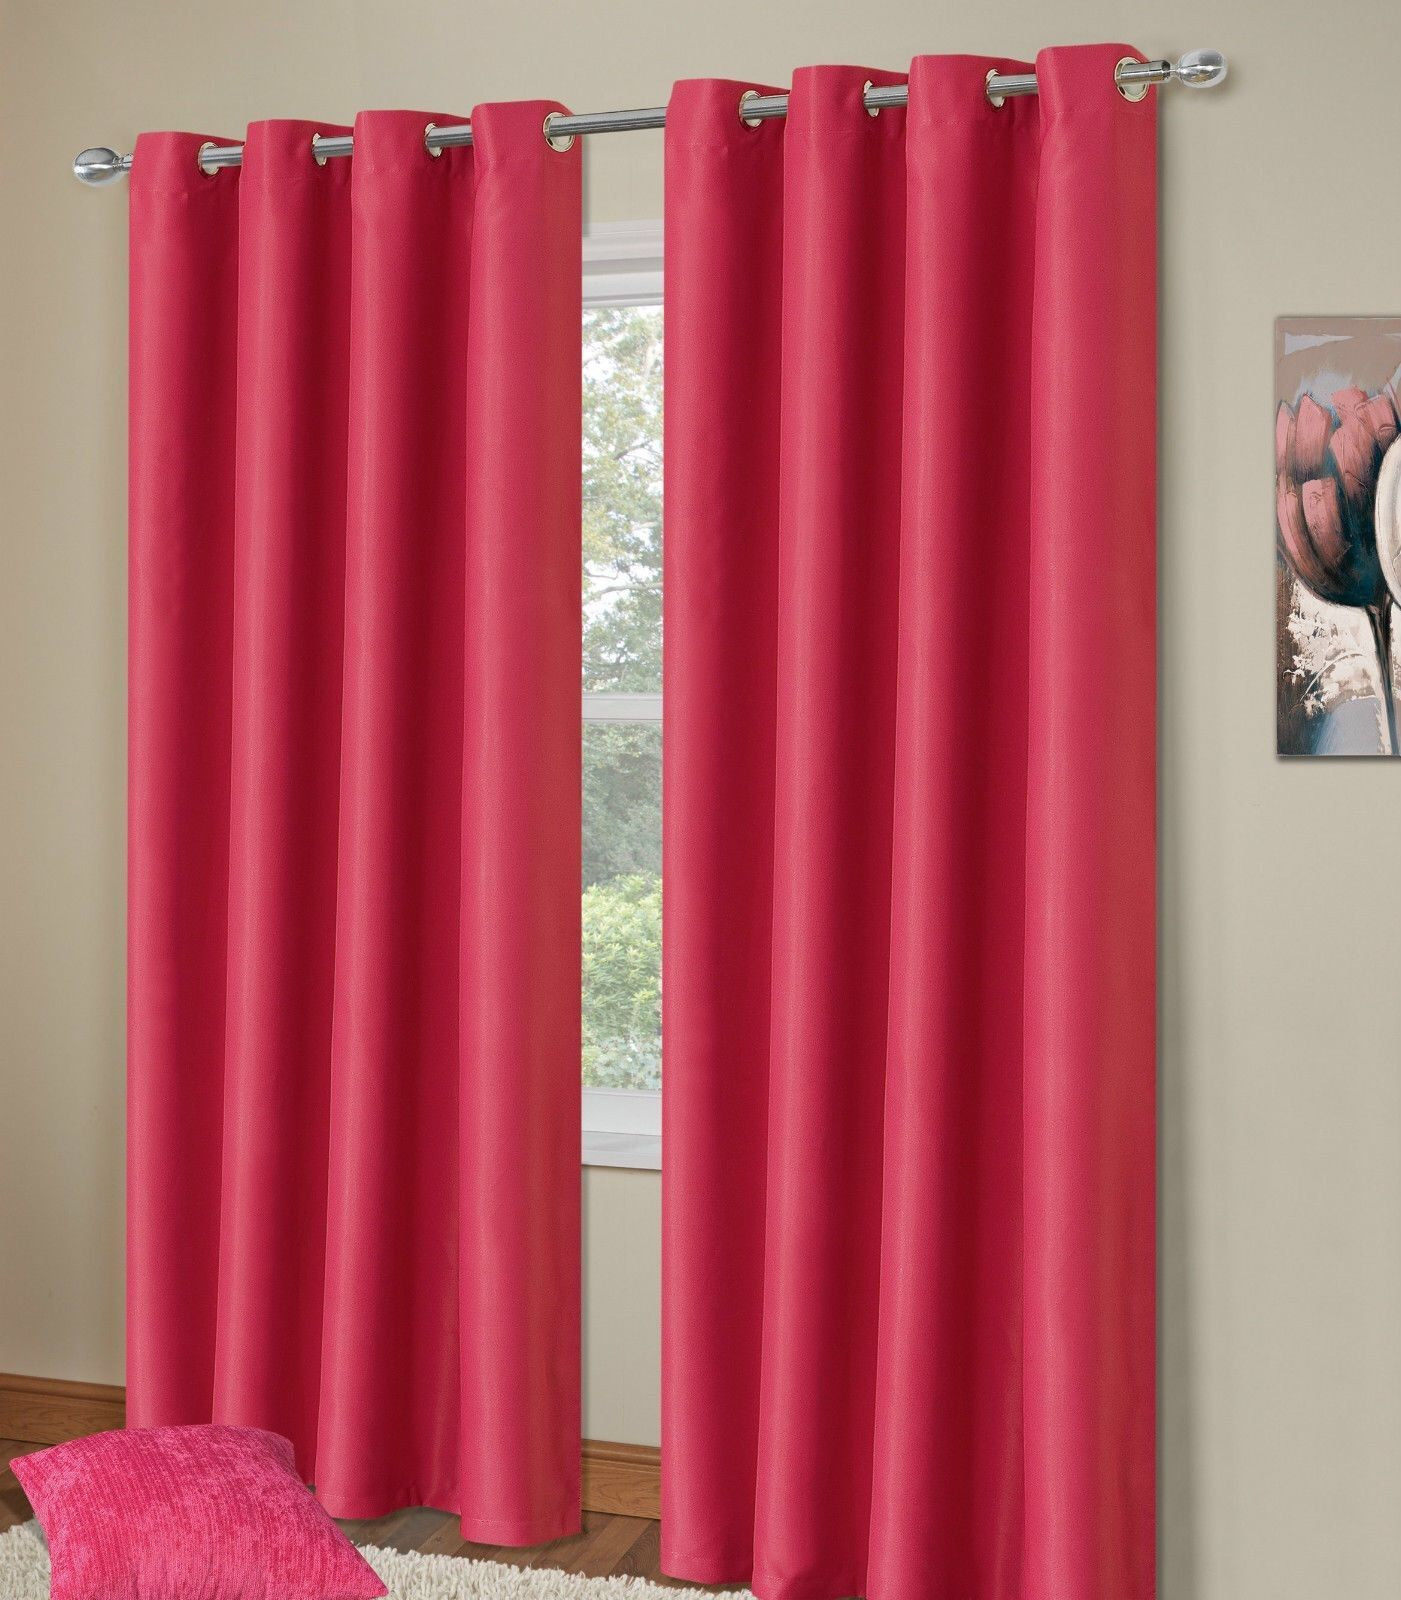 PLAIN FUSCHIA PINK COLOUR THERMAL BLACKOUT BEDROOM LIVINGROOM READYMADE CURTAINS RINGTOP EYELETS